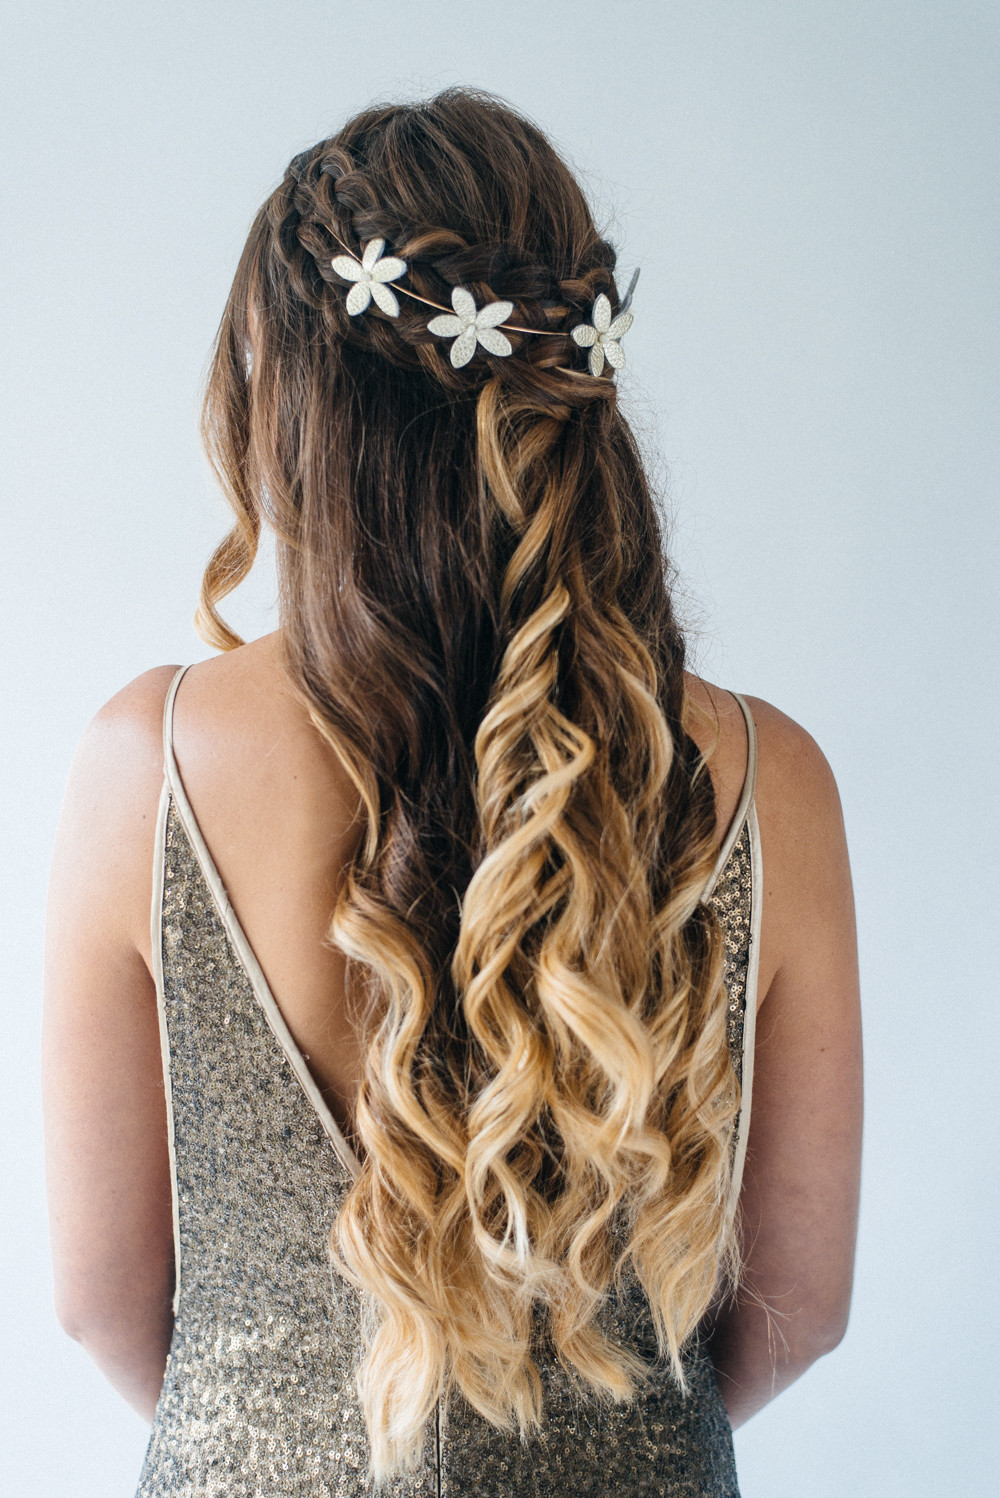 Down Hairstyles For Brides  Inspiration For Half Up Half Down Wedding Hair With